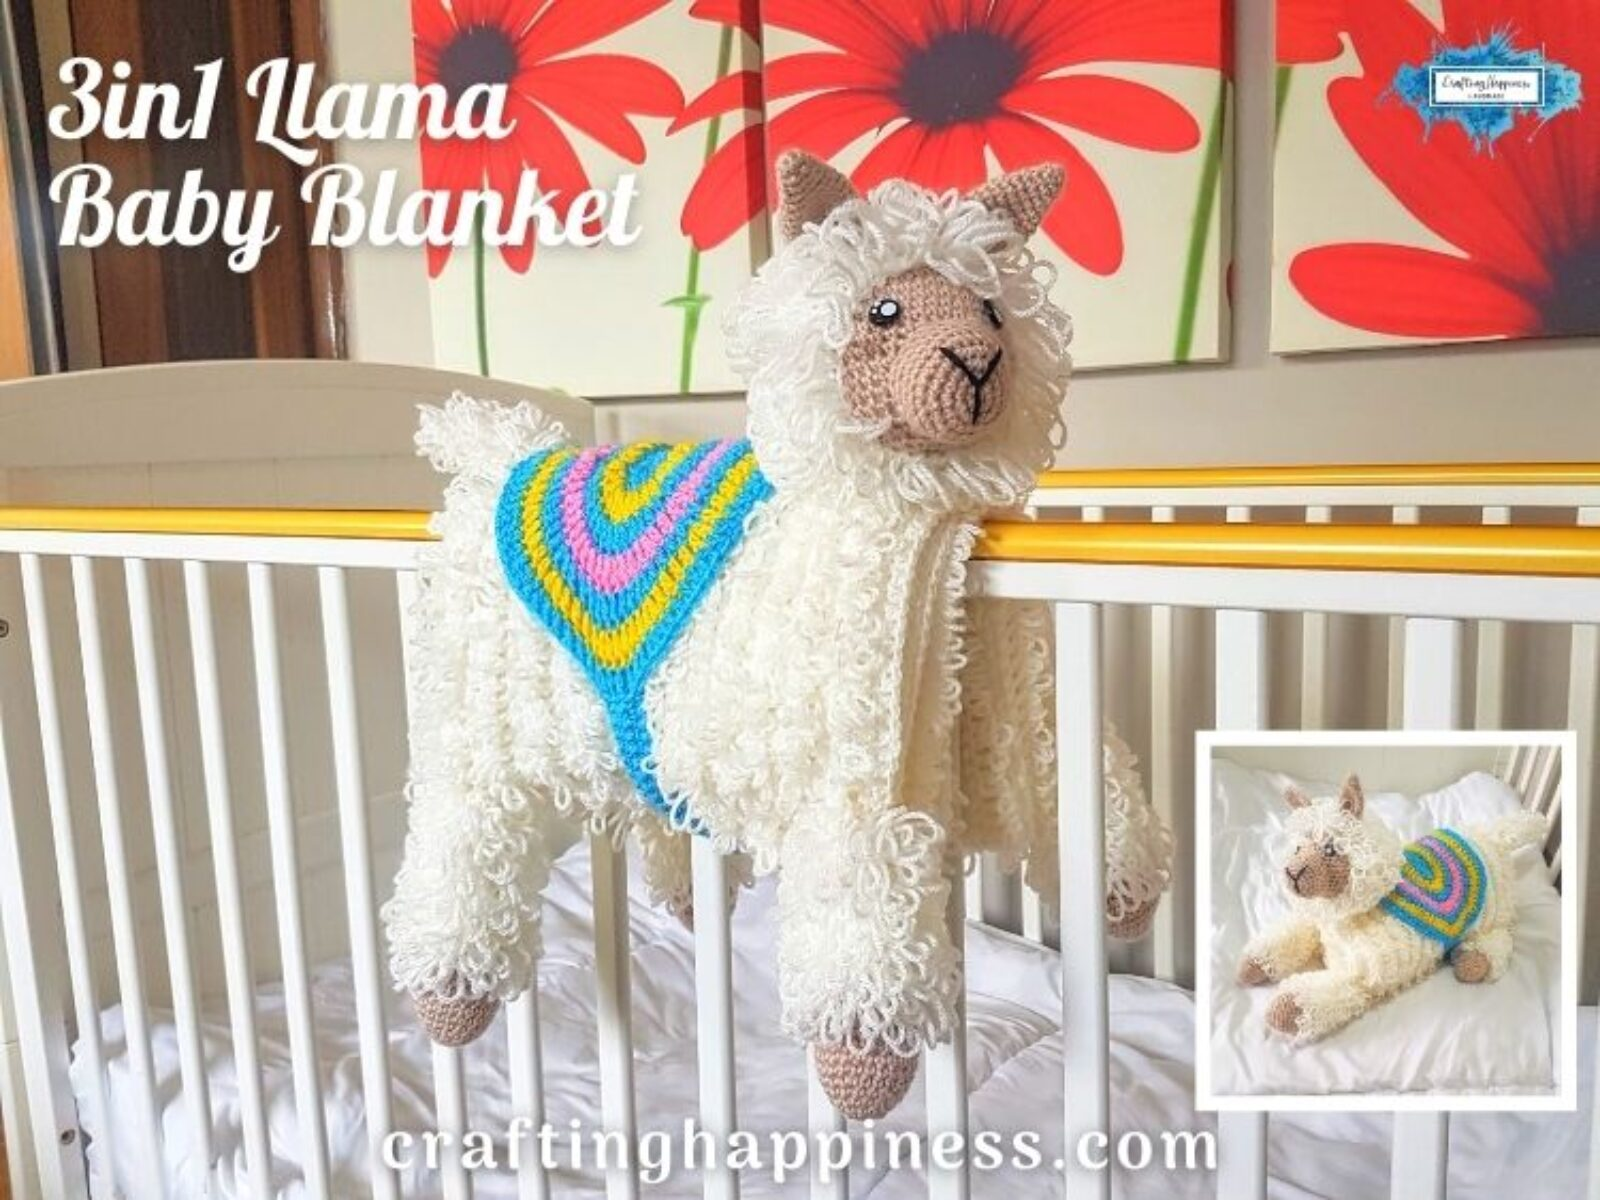 3in1 Llama Baby Blanket Crafting Happiness Facebook Poster